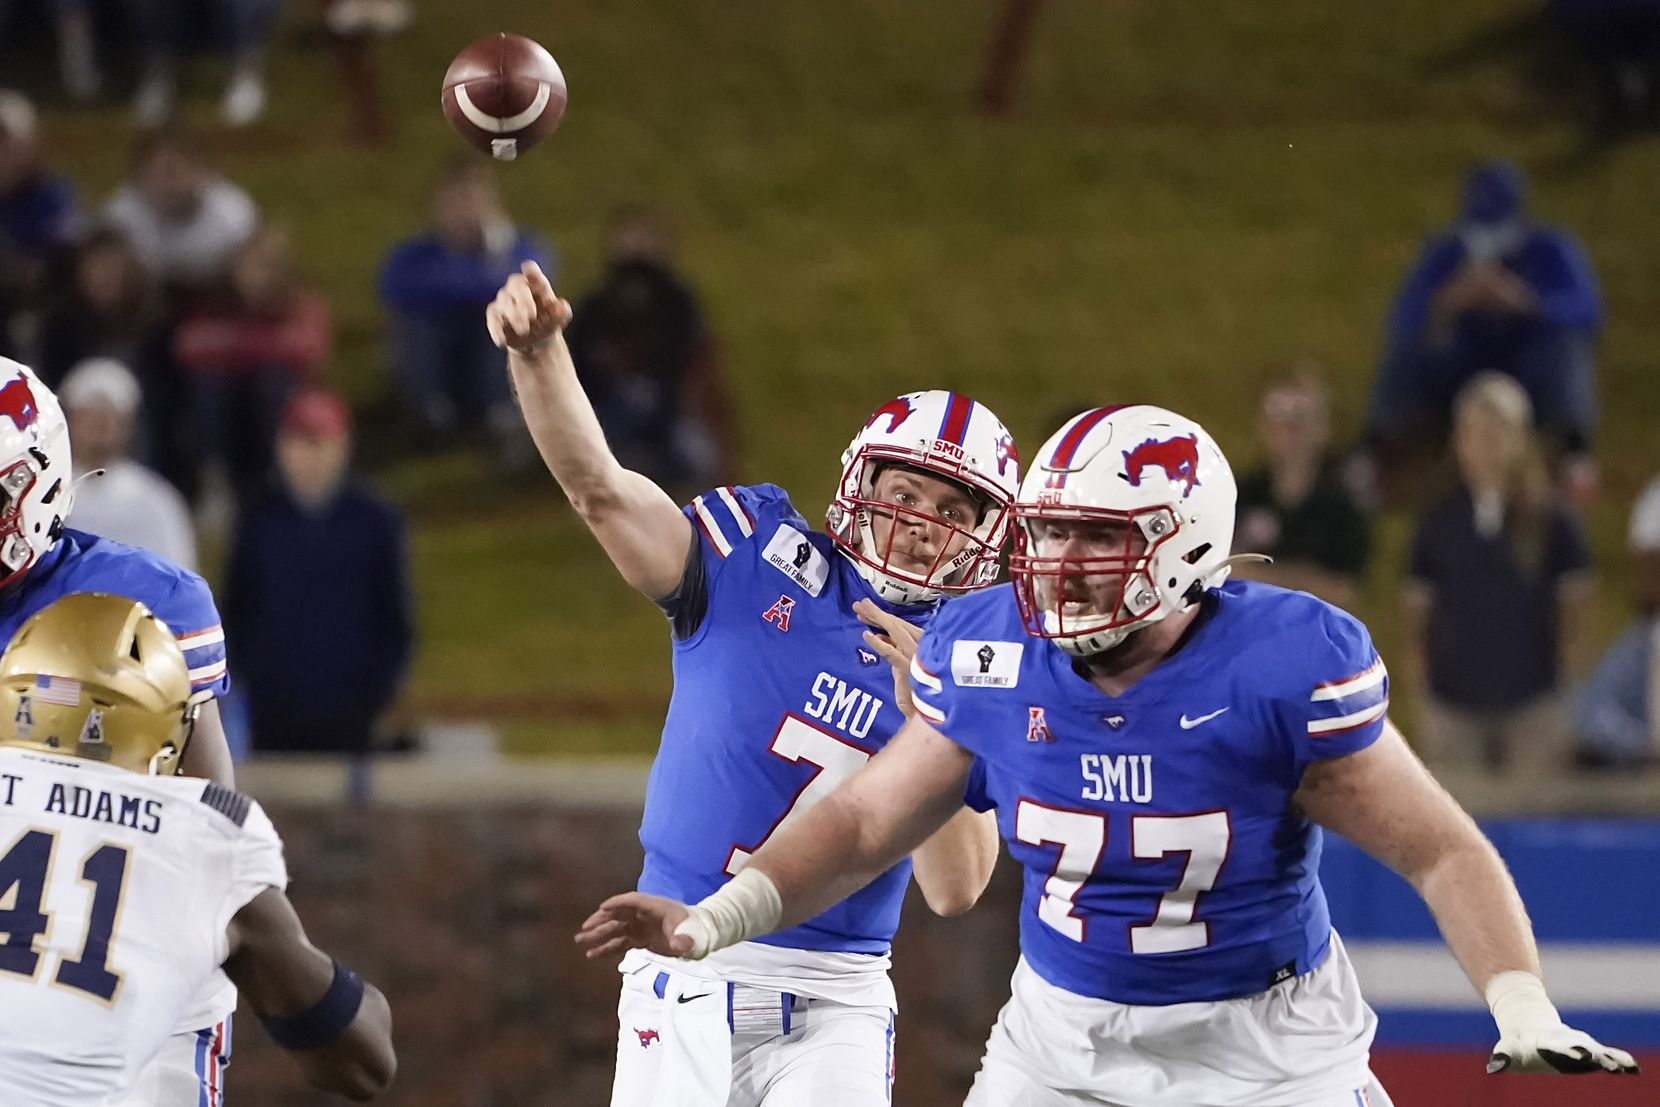 SMU quarterback Shane Buechele (7) throws a pass behind the protection of SMU offensive lineman Alan Ali (77) during the second quarter of an NCAA football game against Navy at Ford Stadium on Saturday, Oct. 31, 2020, in Dallas.